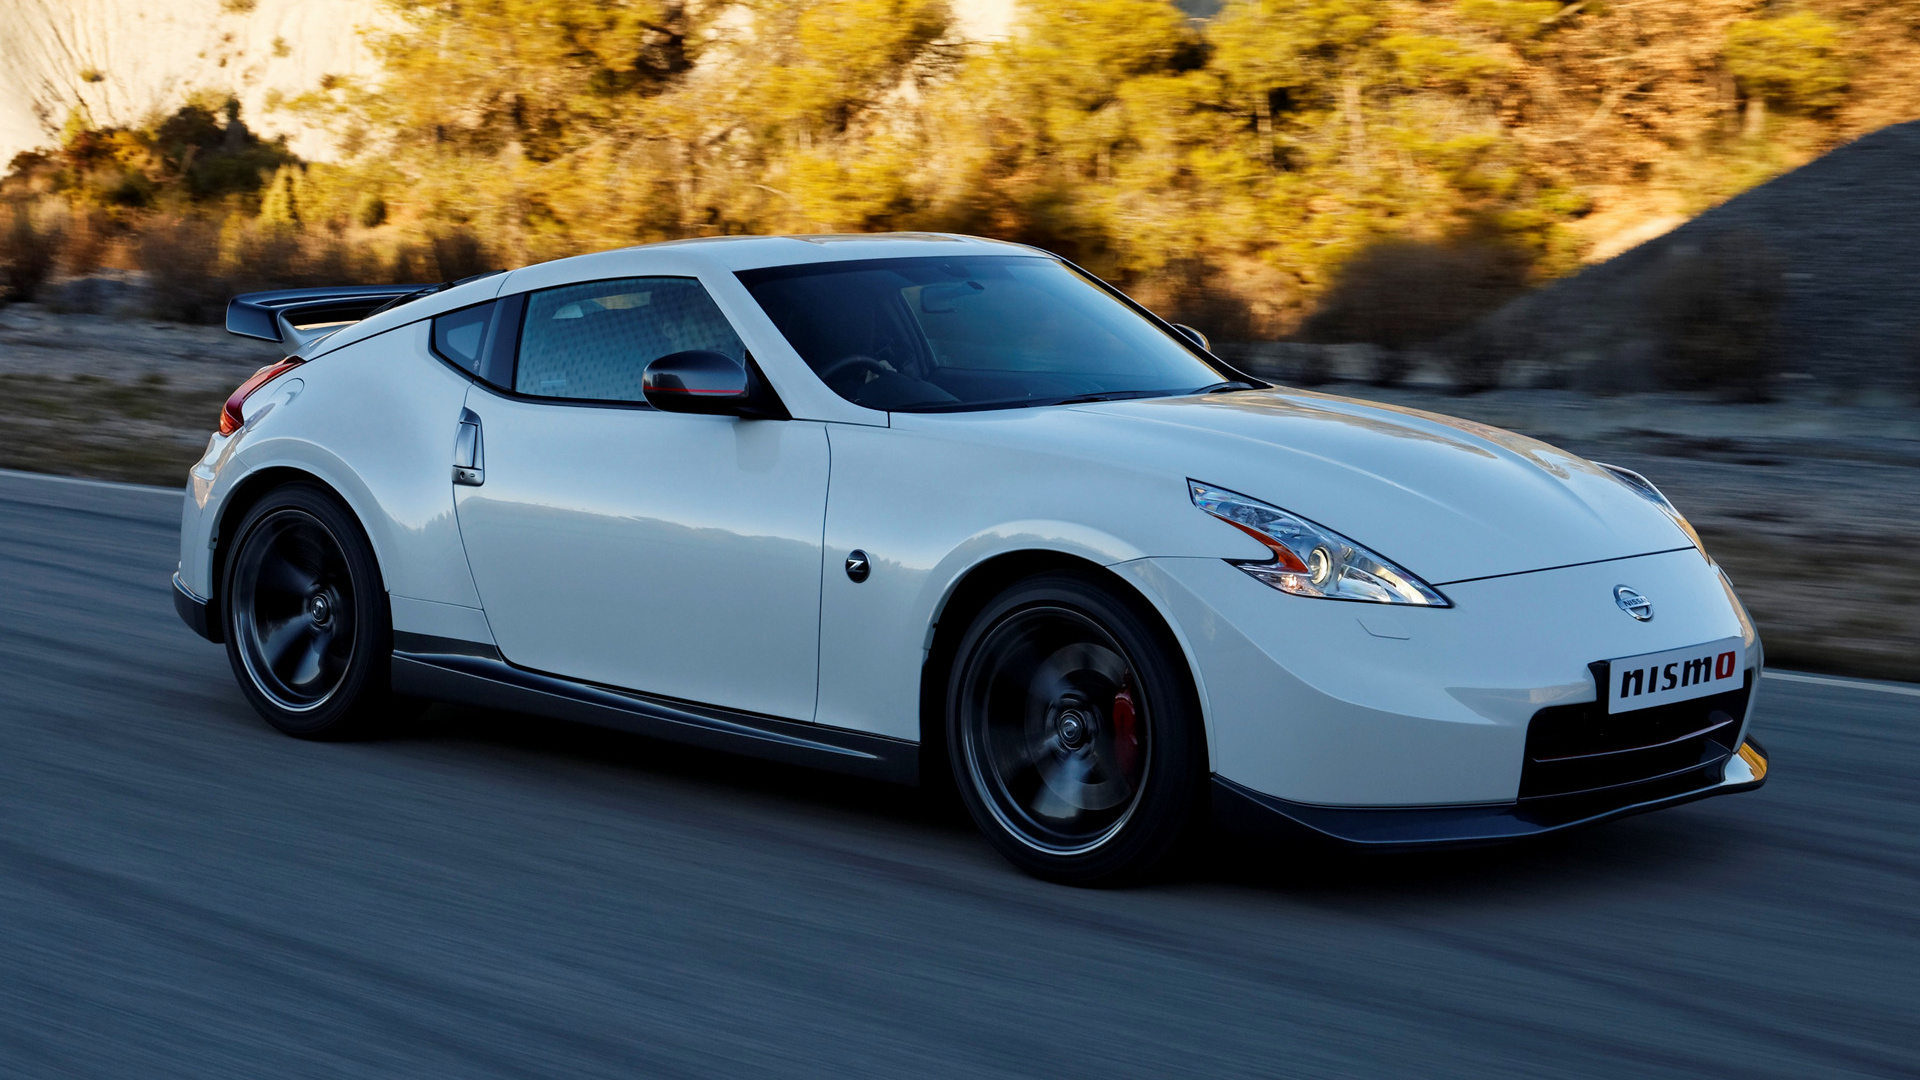 Nissan 370z nismo 2013 uk wallpapers and hd images car pixel hd 169 wide 85 nissan 370z nismo 2013 vanachro Choice Image